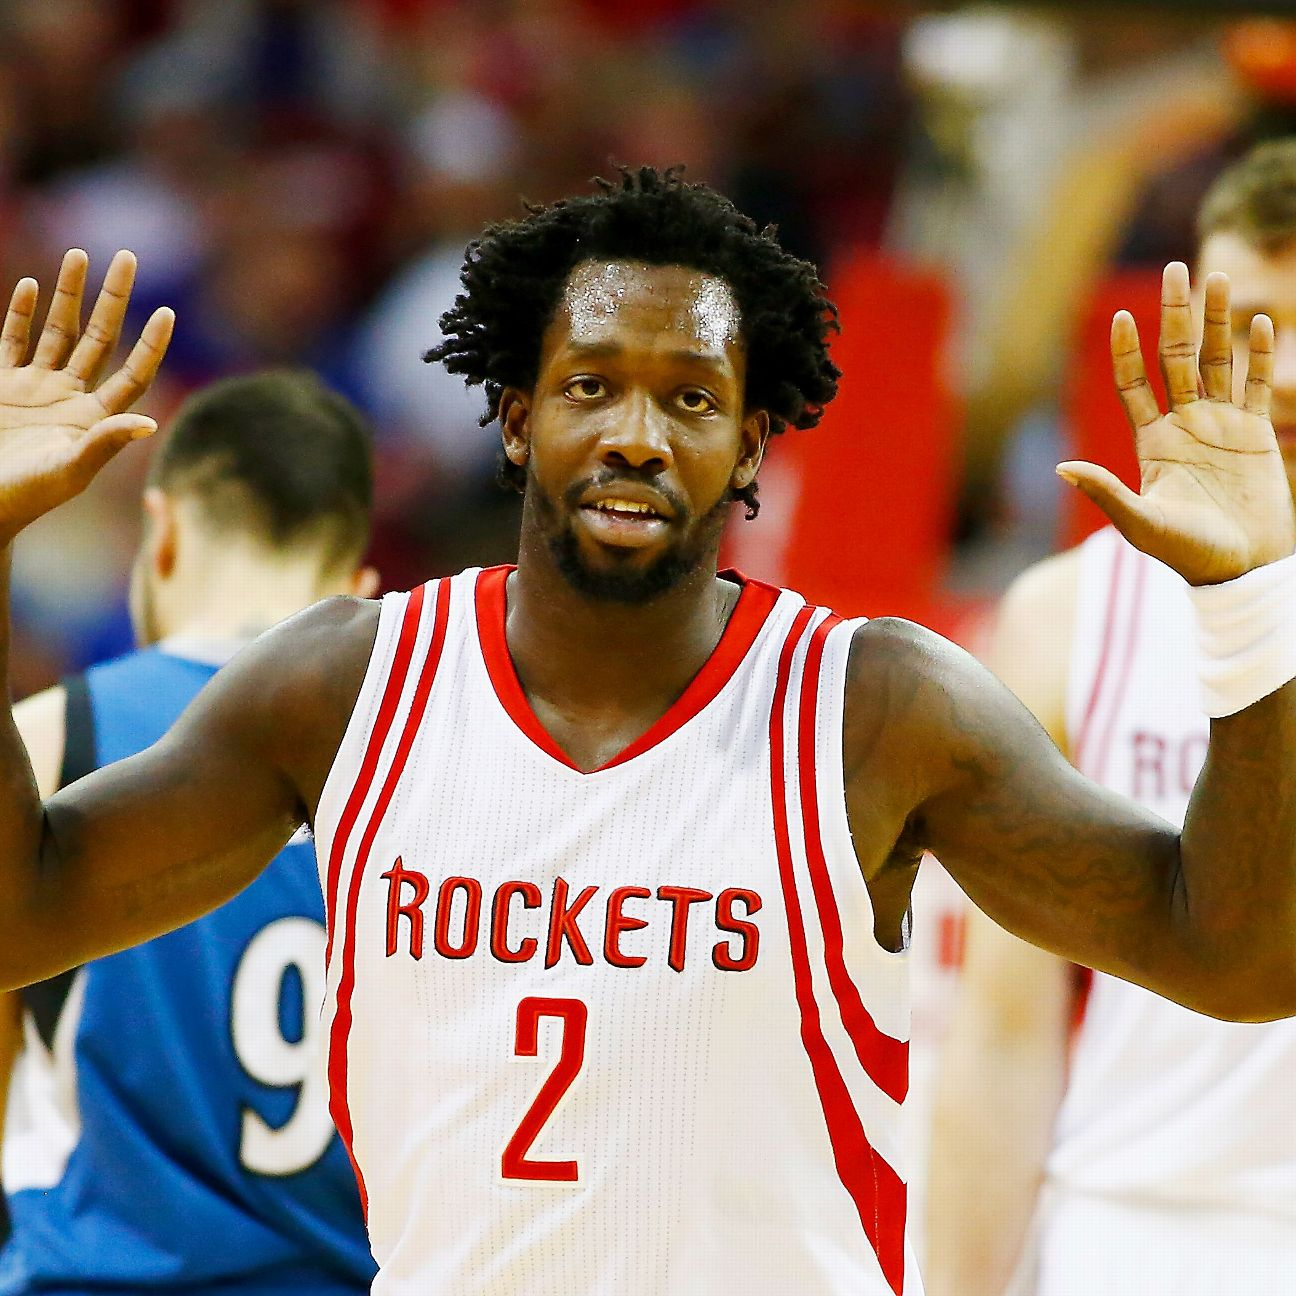 Houston Rockets Defensive Coach: Houston Rockets Guard Patrick Beverley Opts To Have